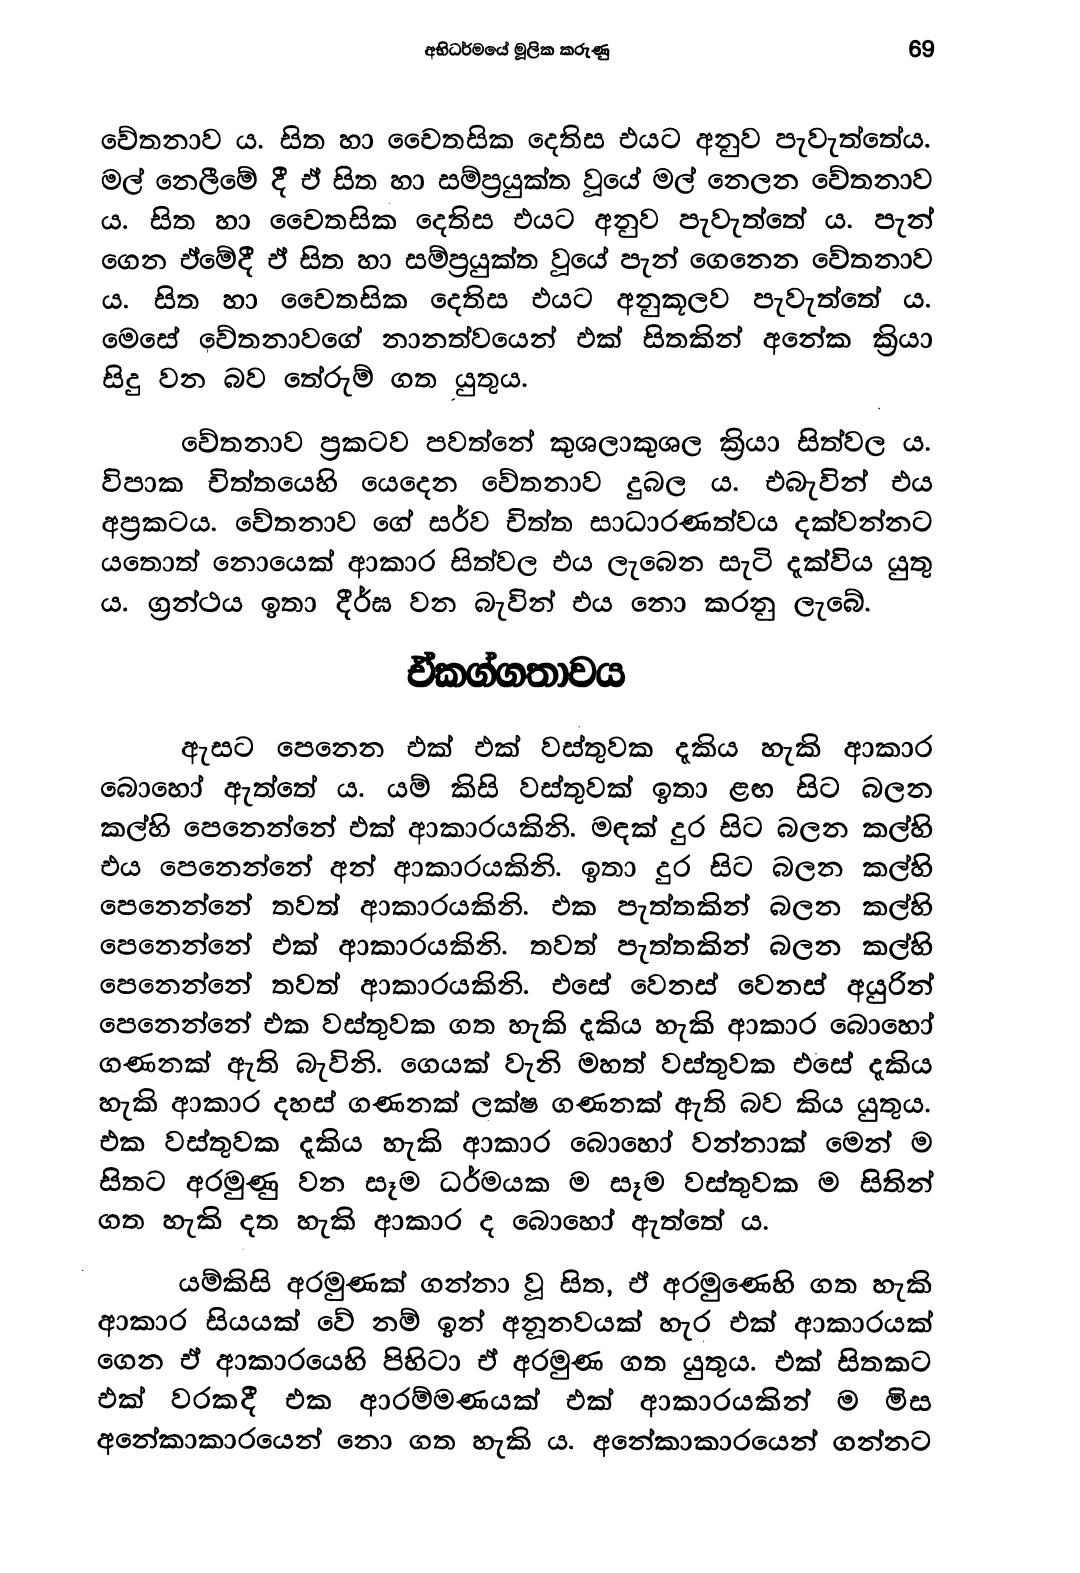 abhidharmaye-mulika-karunu-rerukane-chandavimala-nahimi-full-book-with-comments-highlights-and-book-marks_page_067